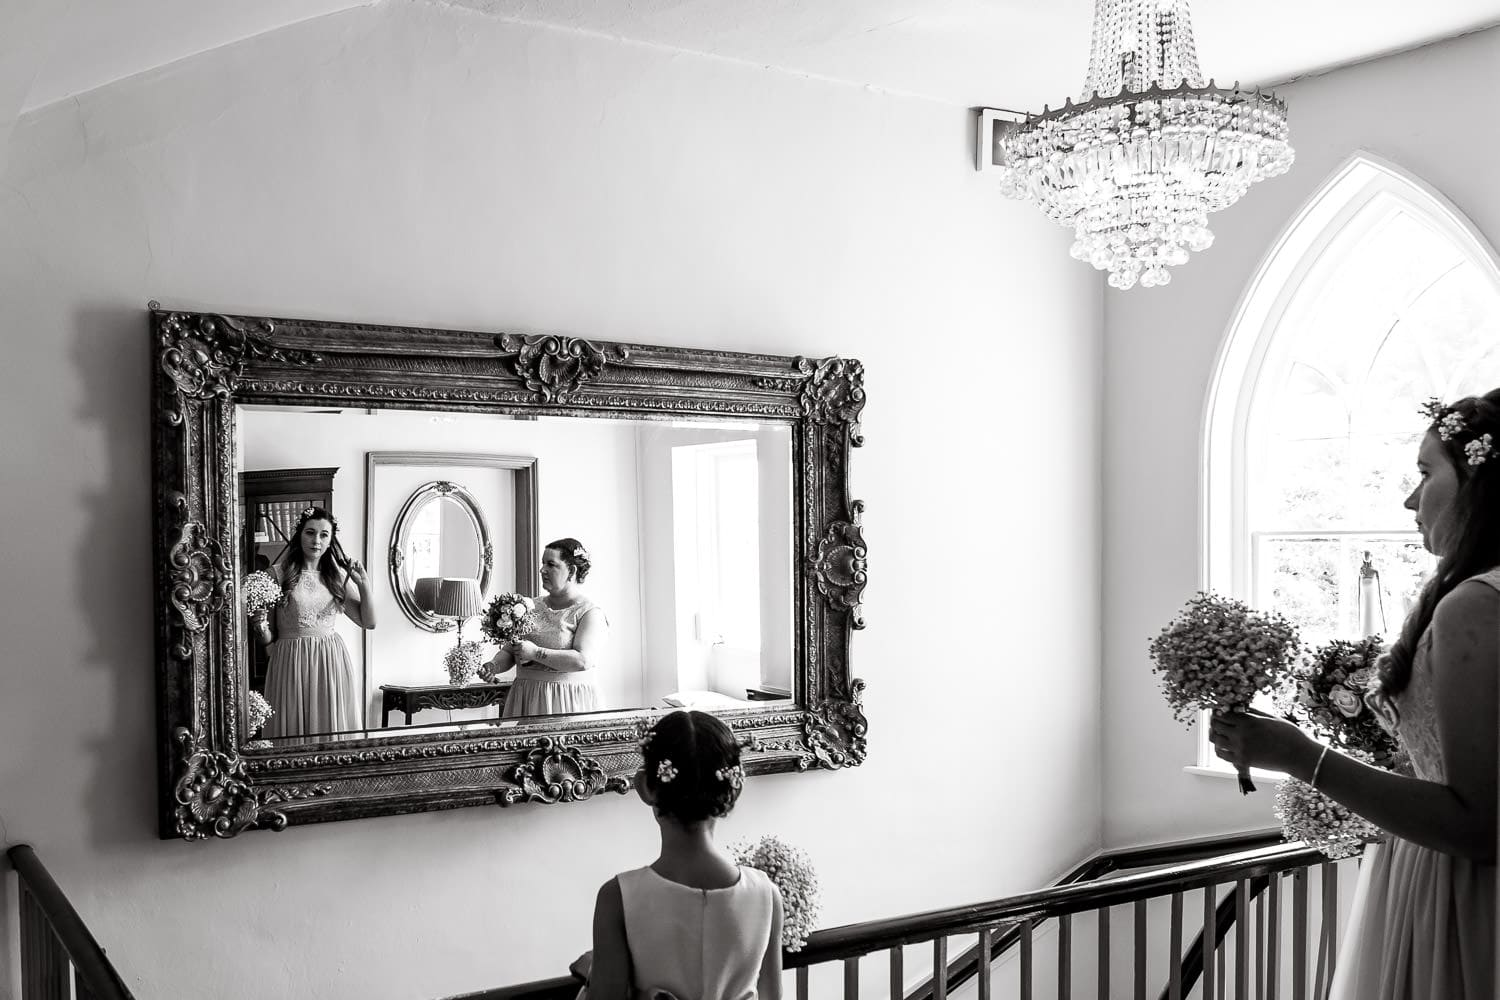 Bridal party catches relection in mirror at stunning warwick house wedding venue